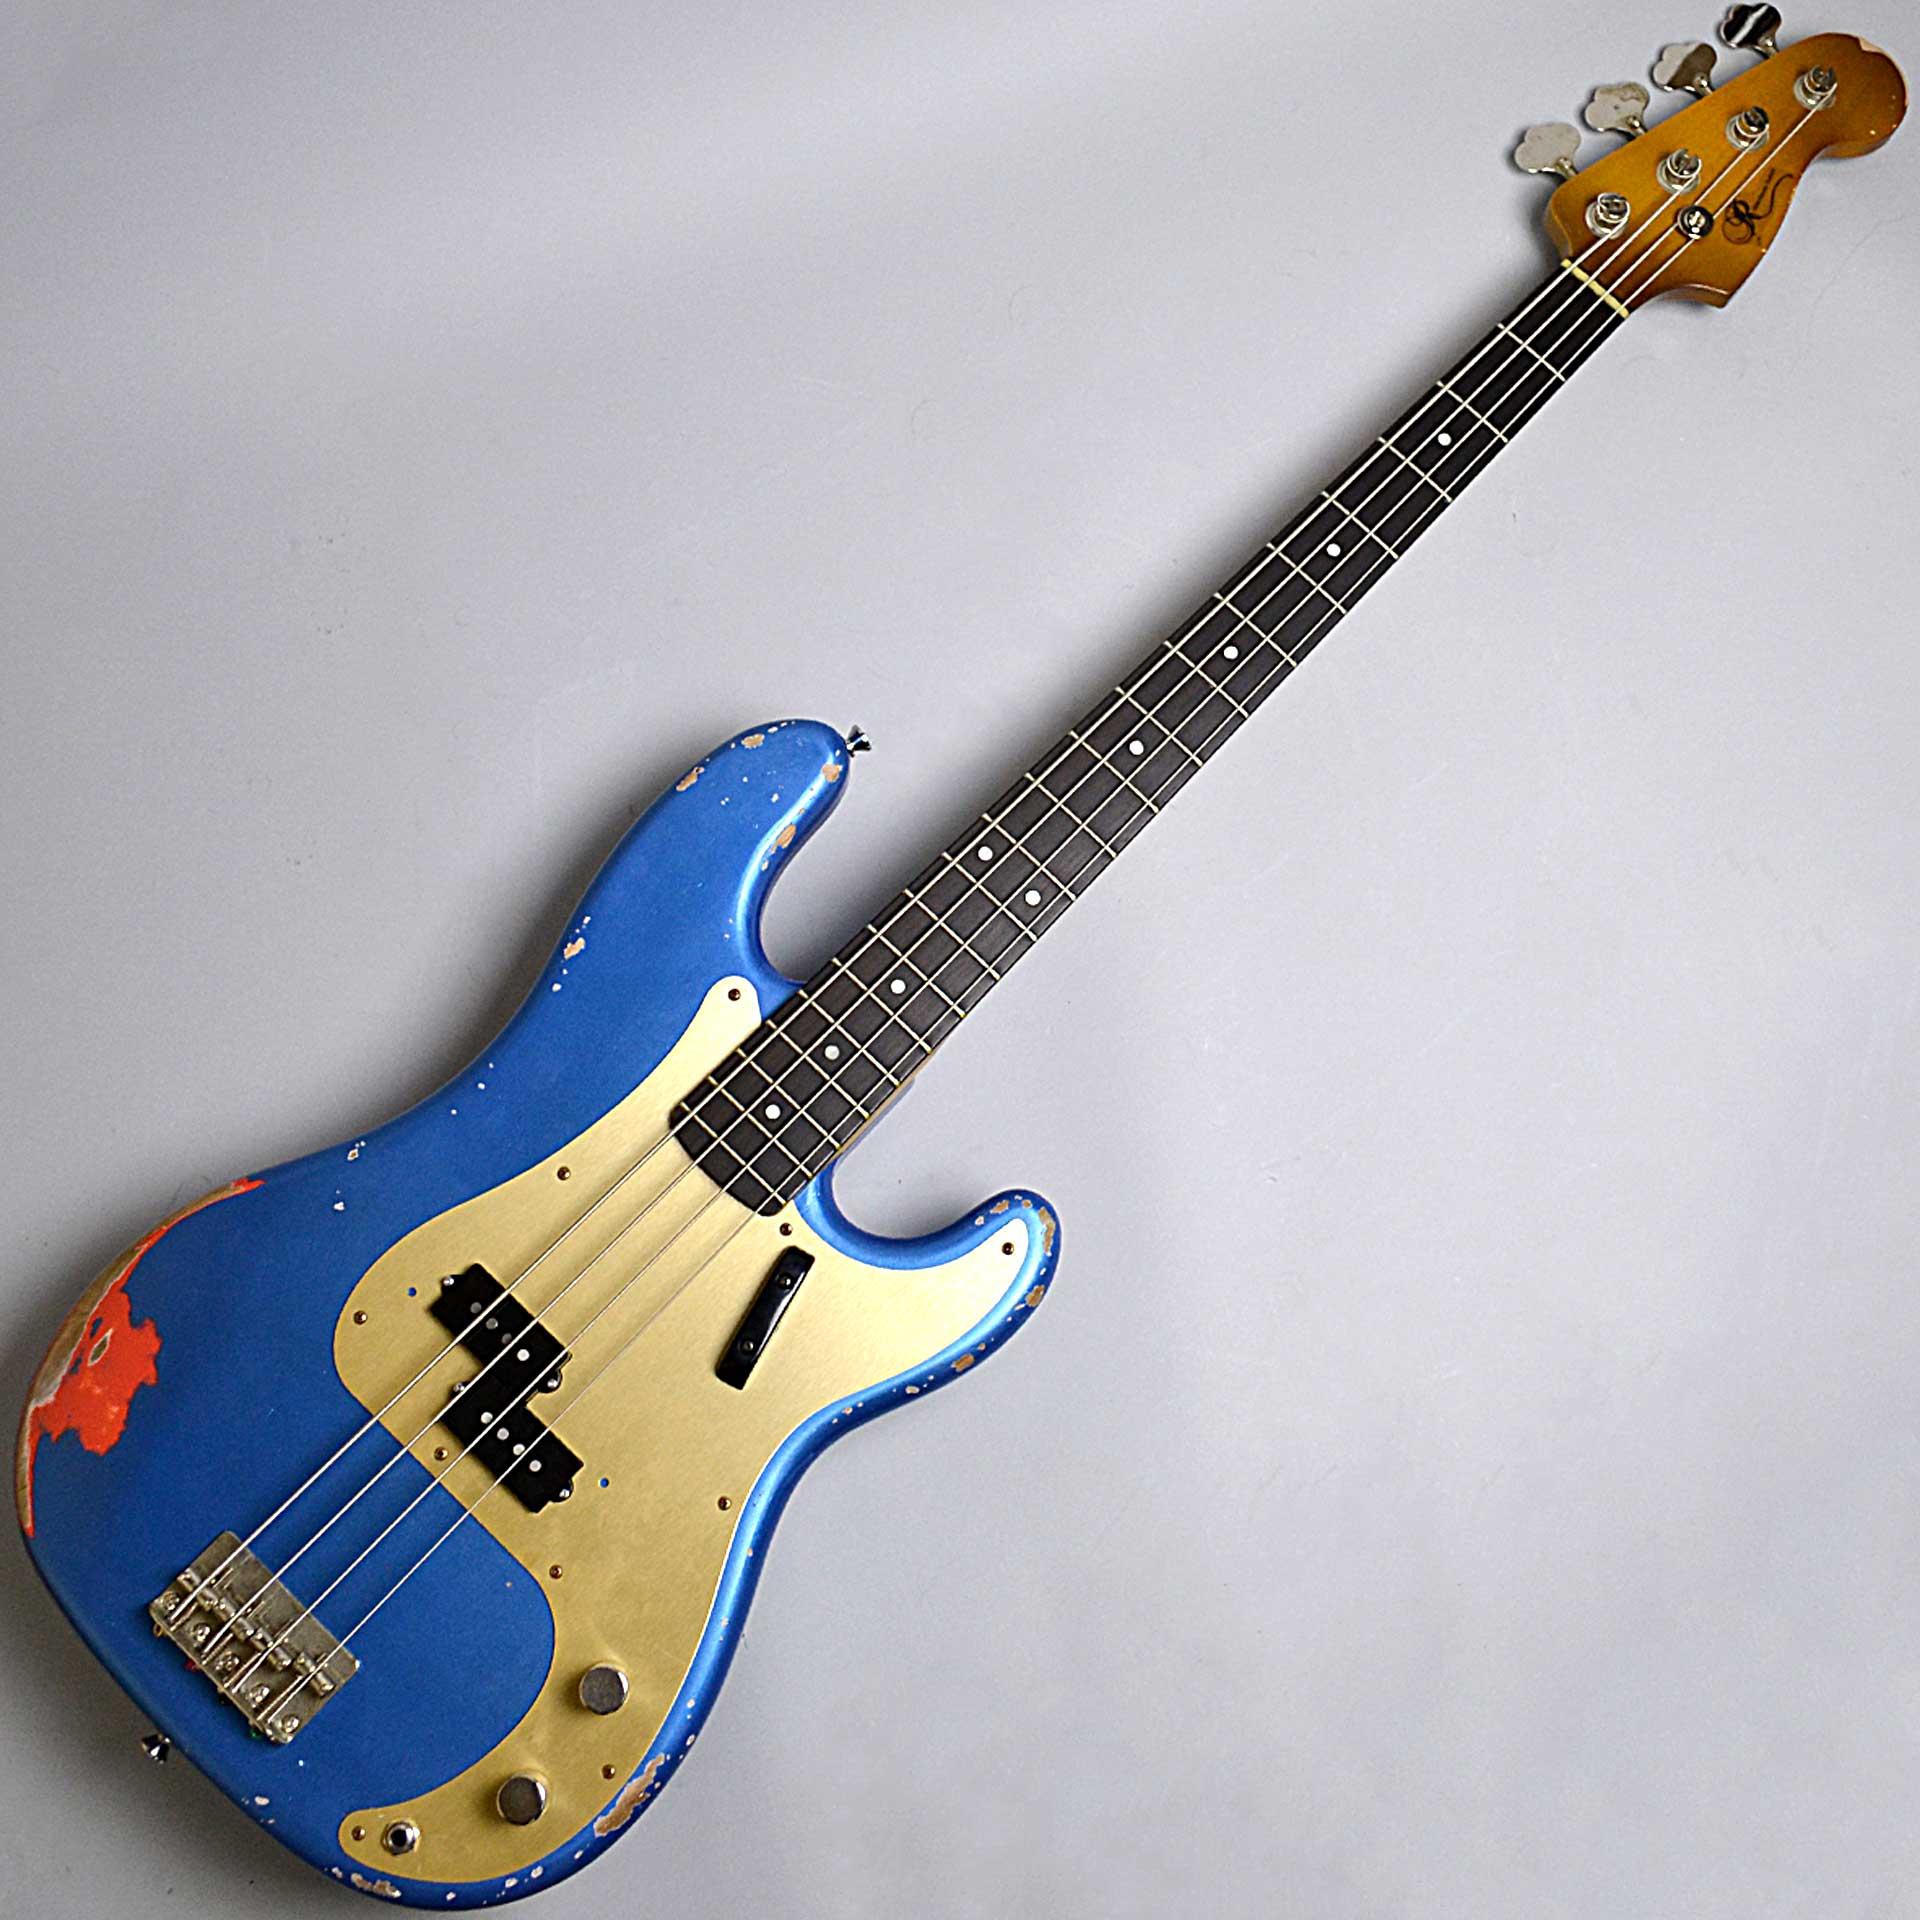 P-BASS/Lake Placid Blue over Fiesta Red/Alder/Rose/Midium Agedのボディトップ-アップ画像